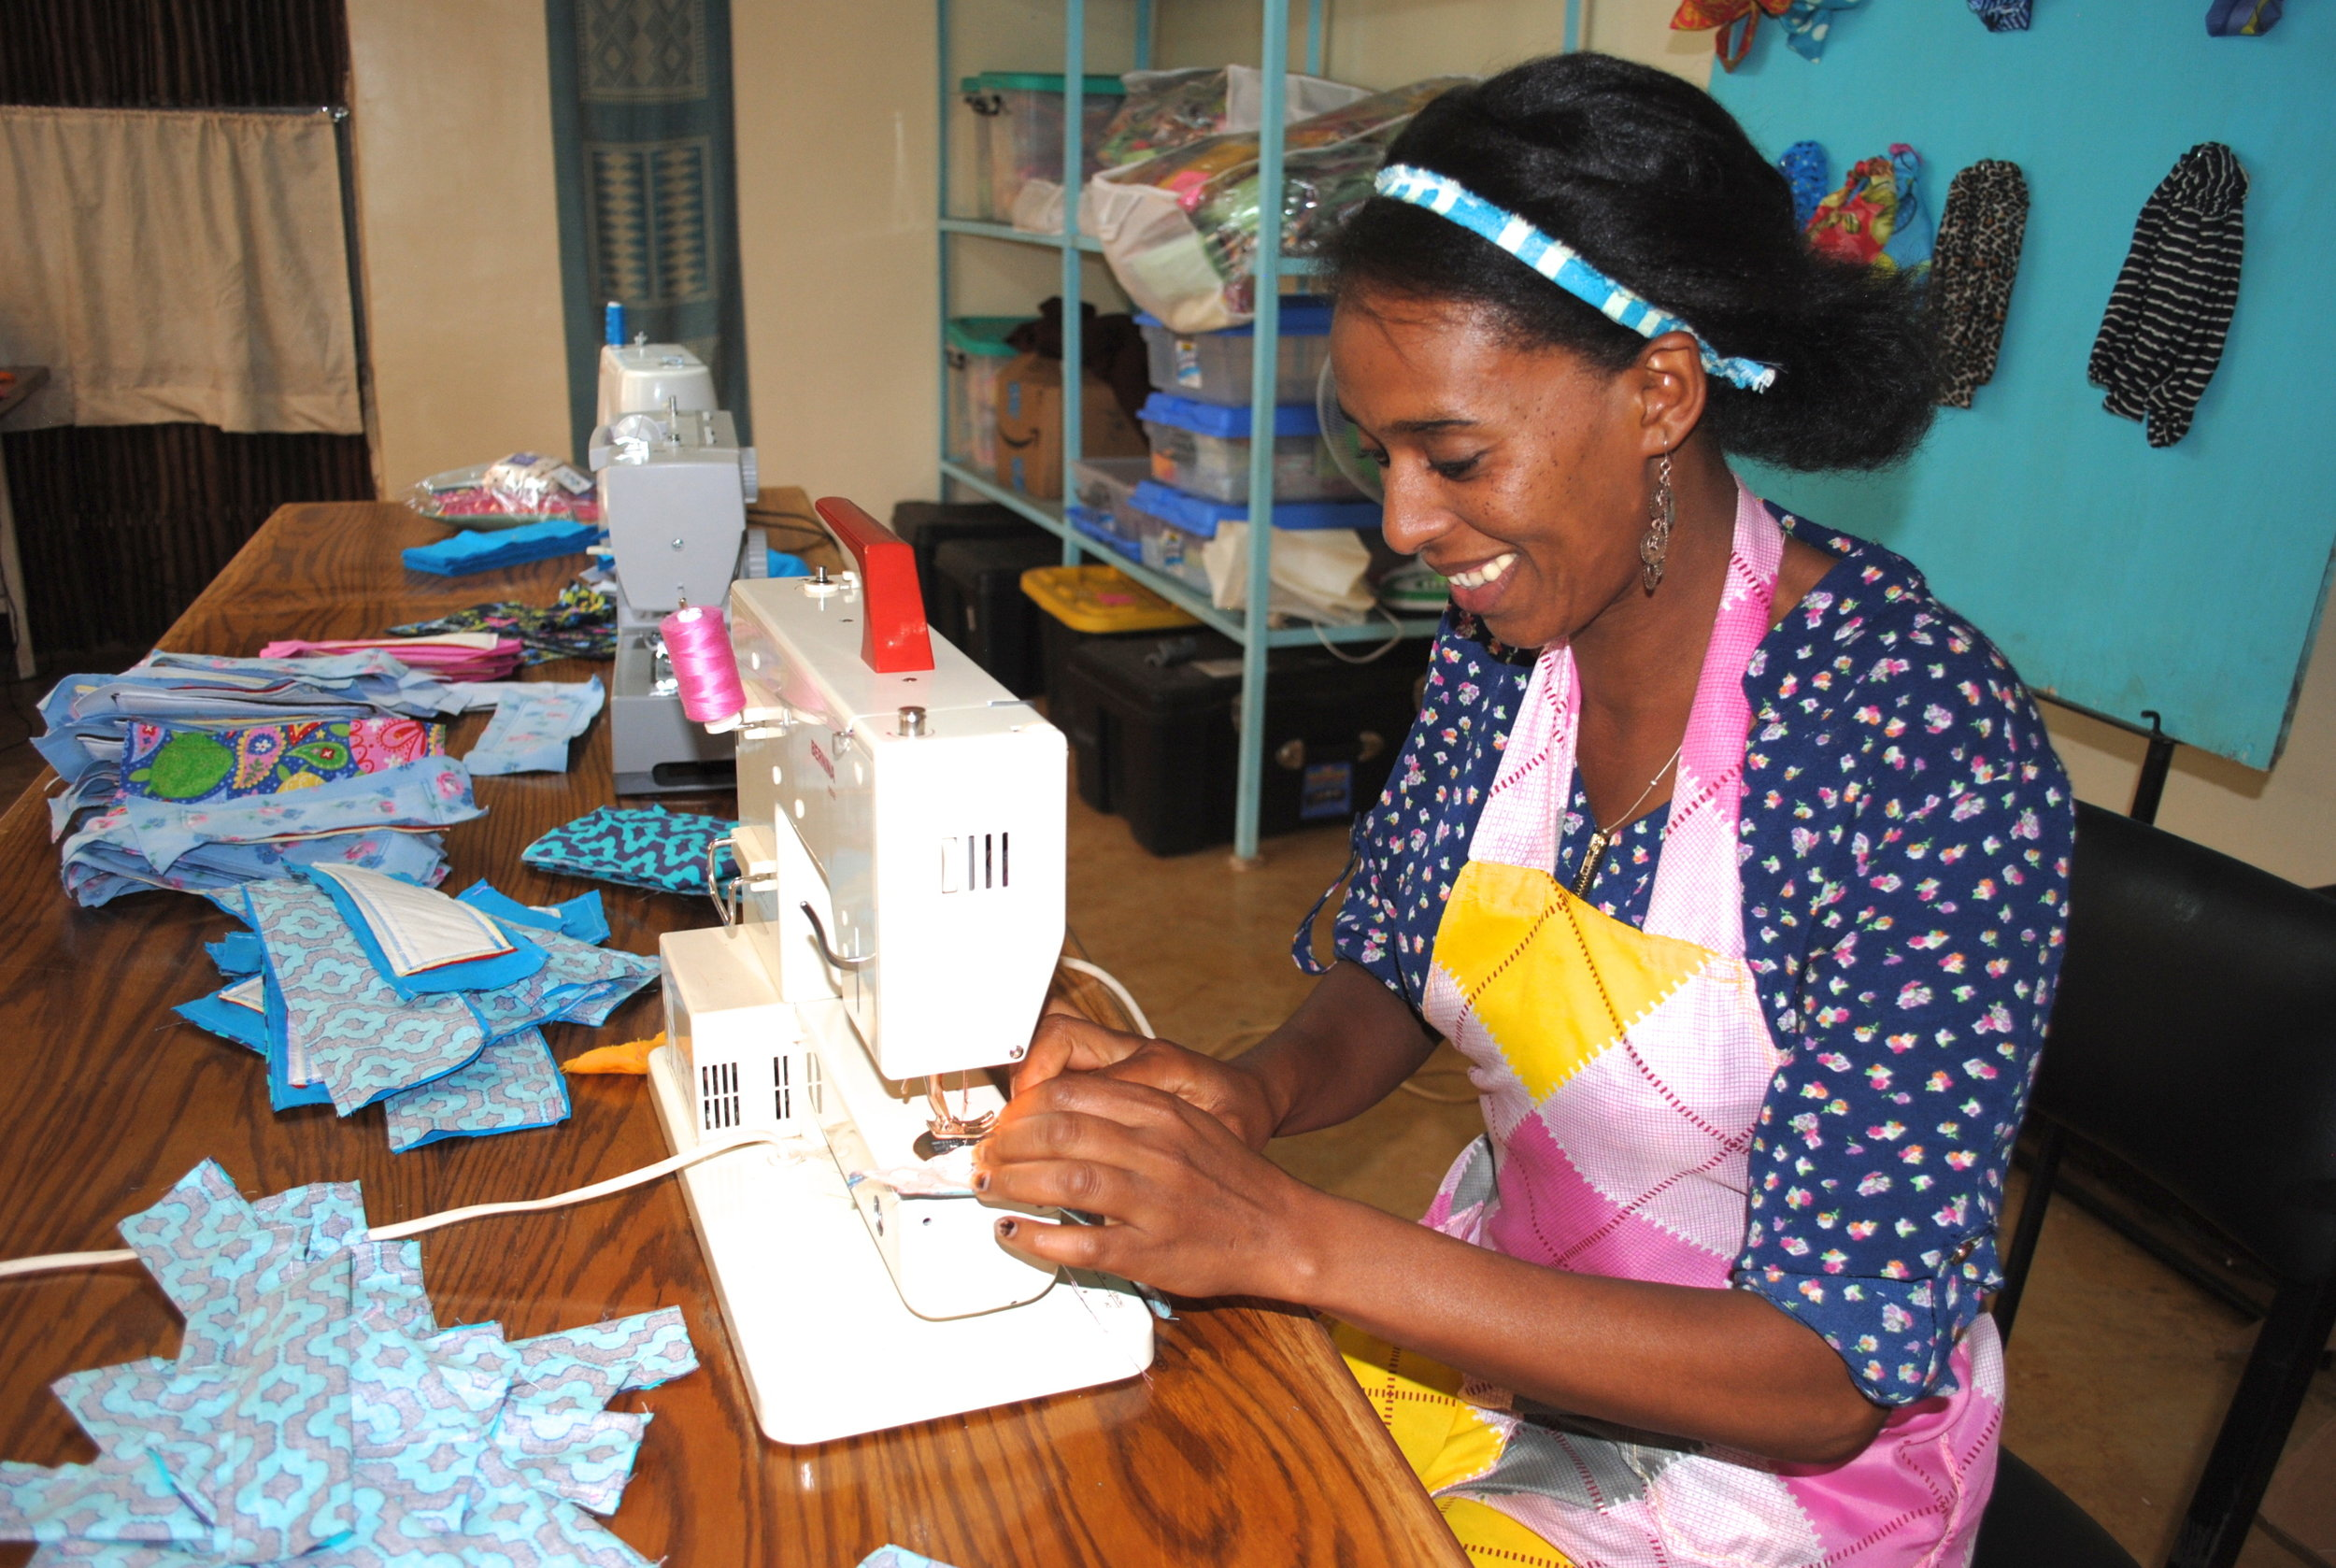 Serkalem sews a washable, reusable, affordable pad at the WRAPS facility in Wolaitta Village. She's one of six women employed by the project, which helps to keep girls in school by providing them with safe and sanitary pads to use when they have their menstrual periods.